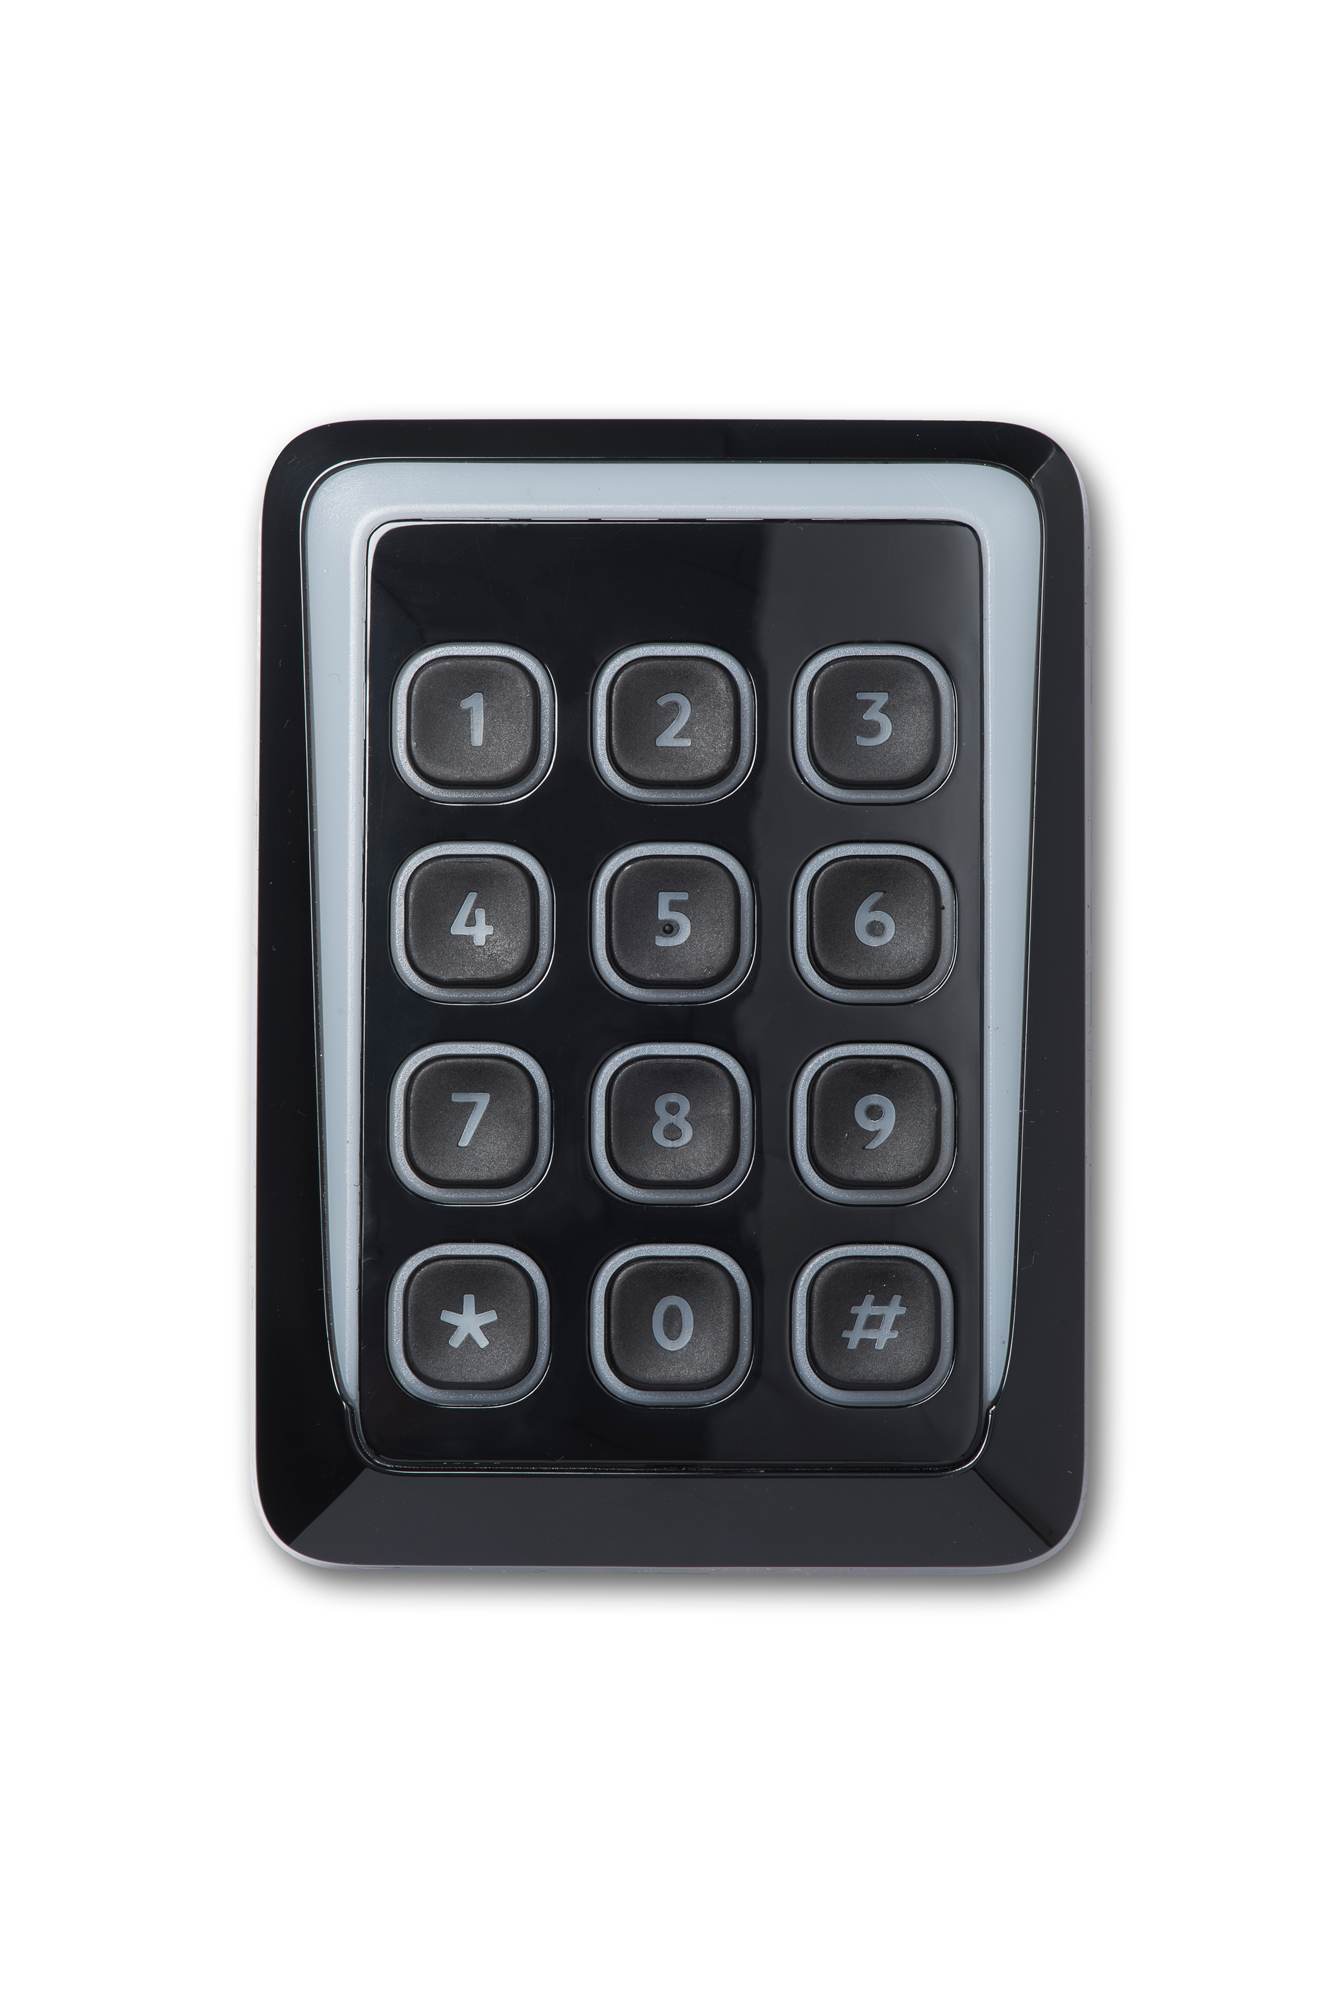 sc9100-md-mp-s-cidron-with-keypad-glossy-black-h2000px